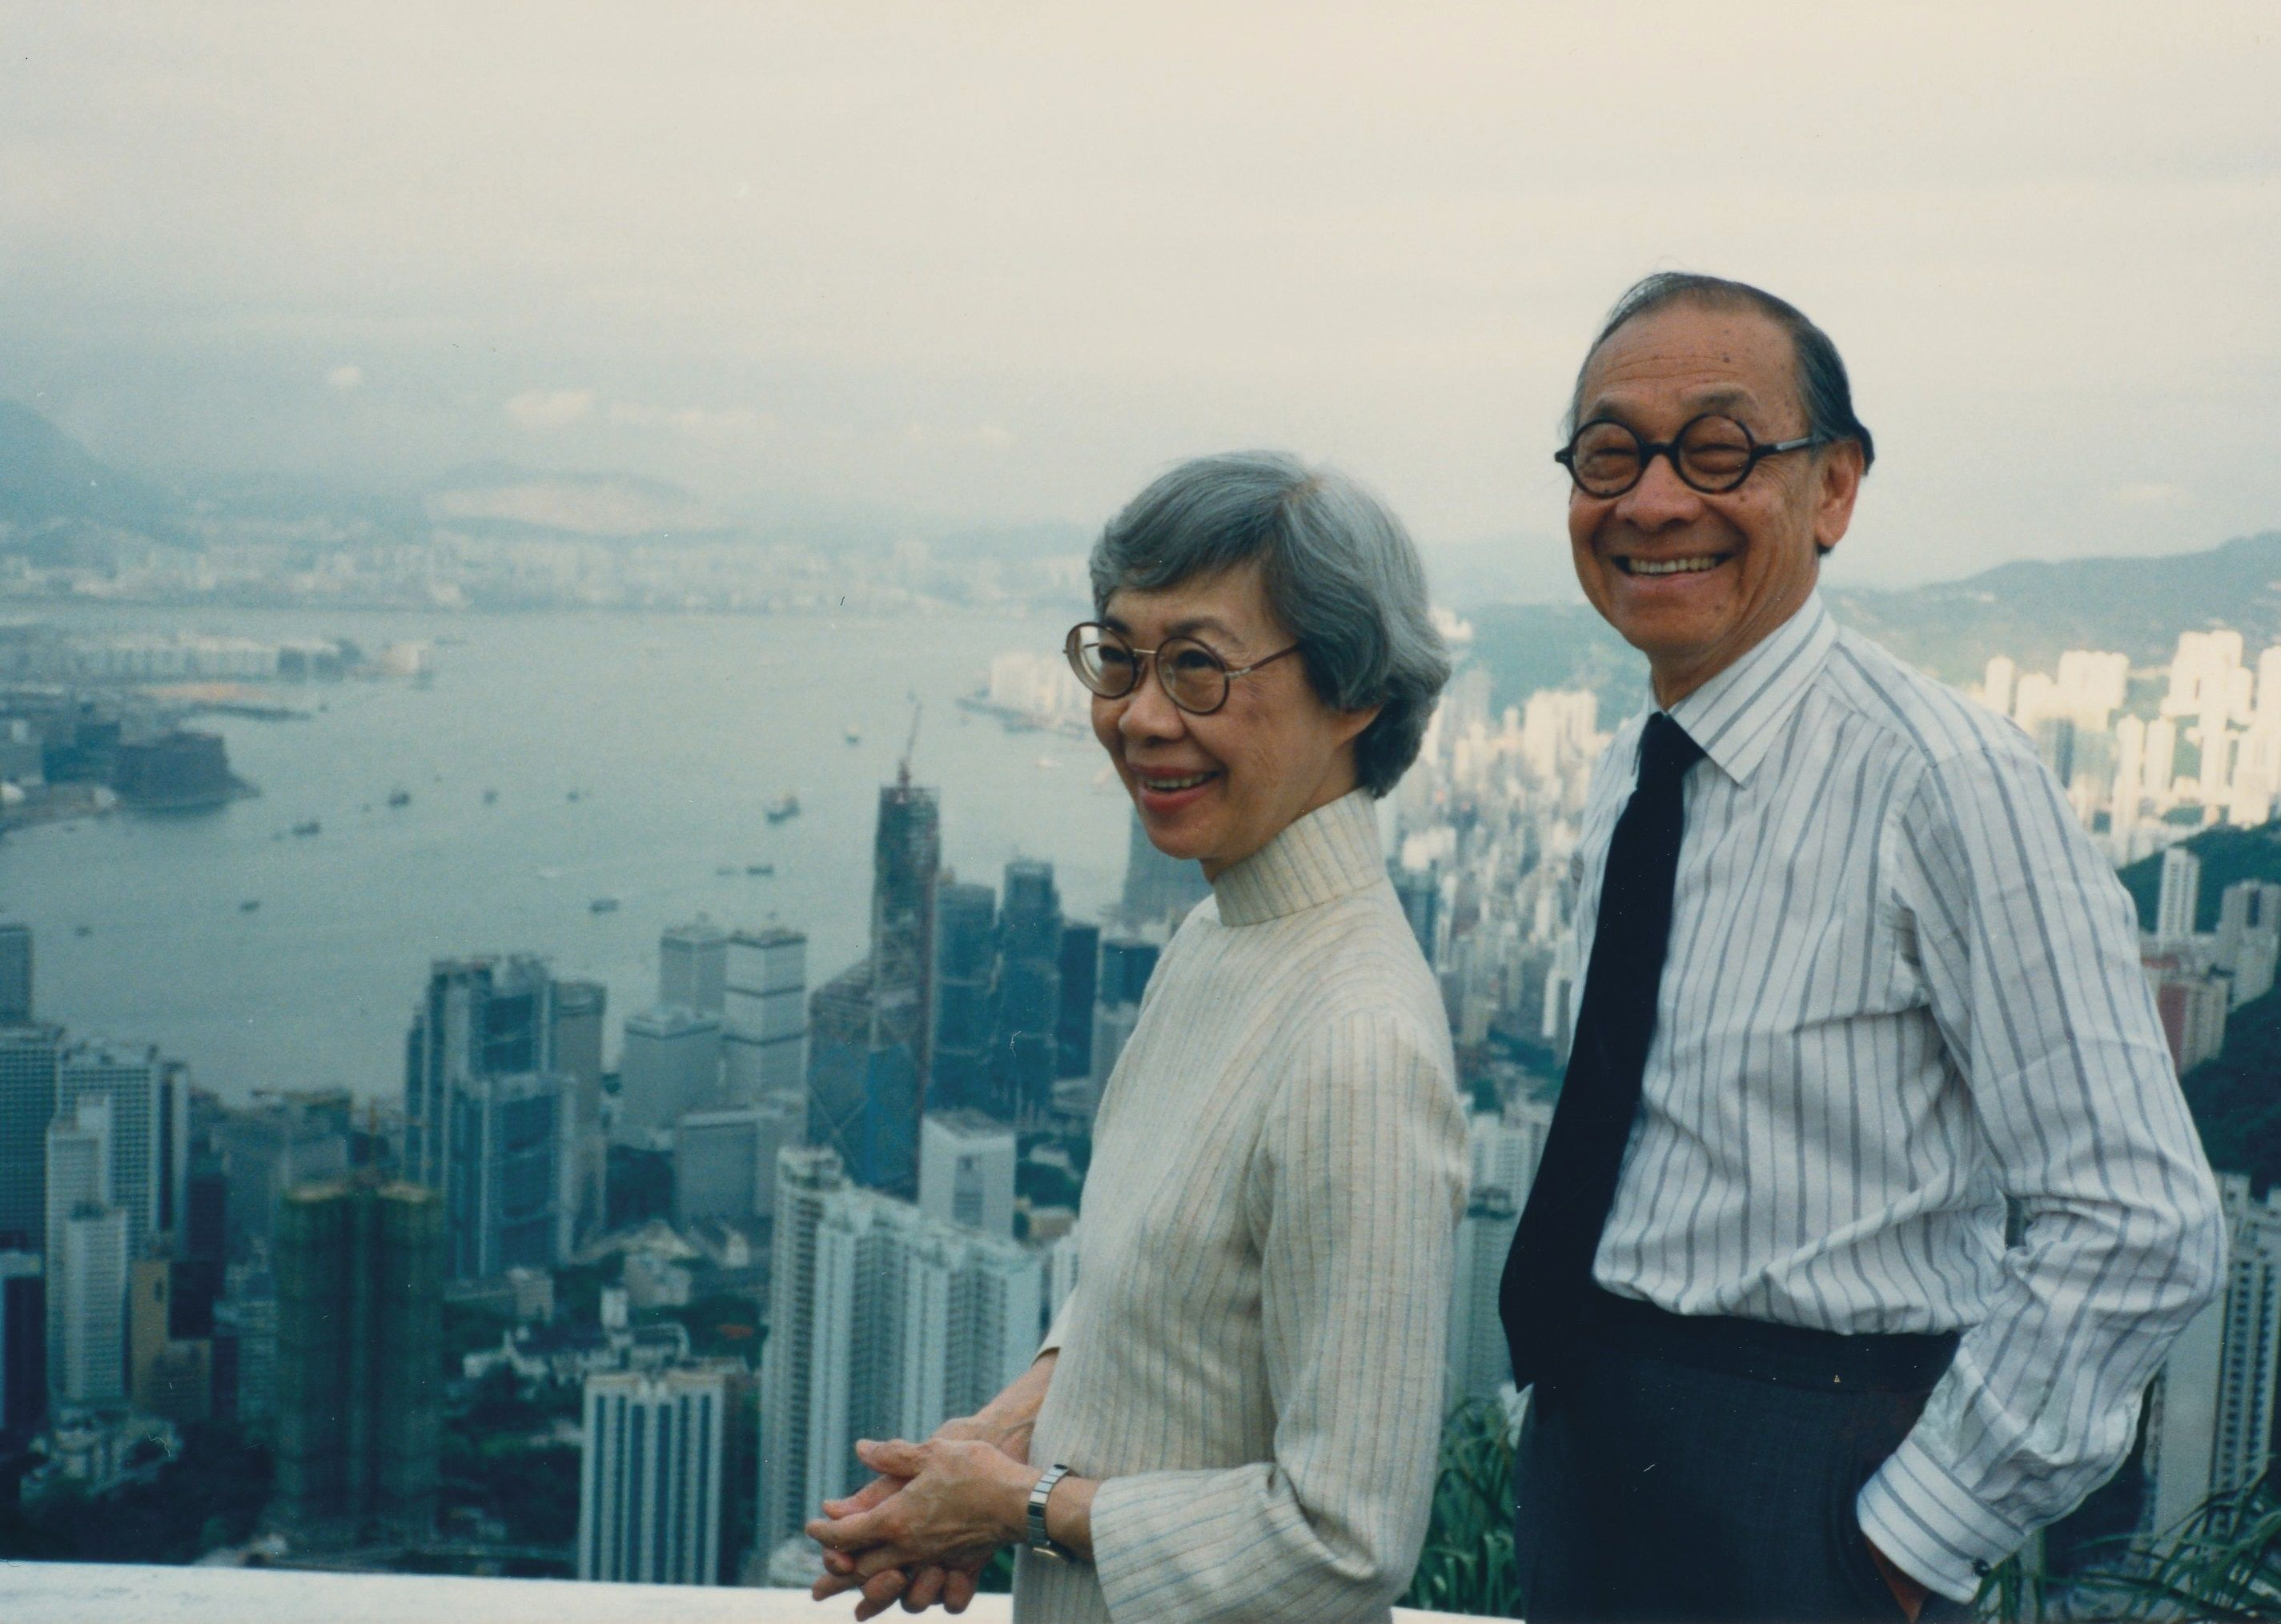 A photo of a man, I.M. Pei, and woman against a skyline